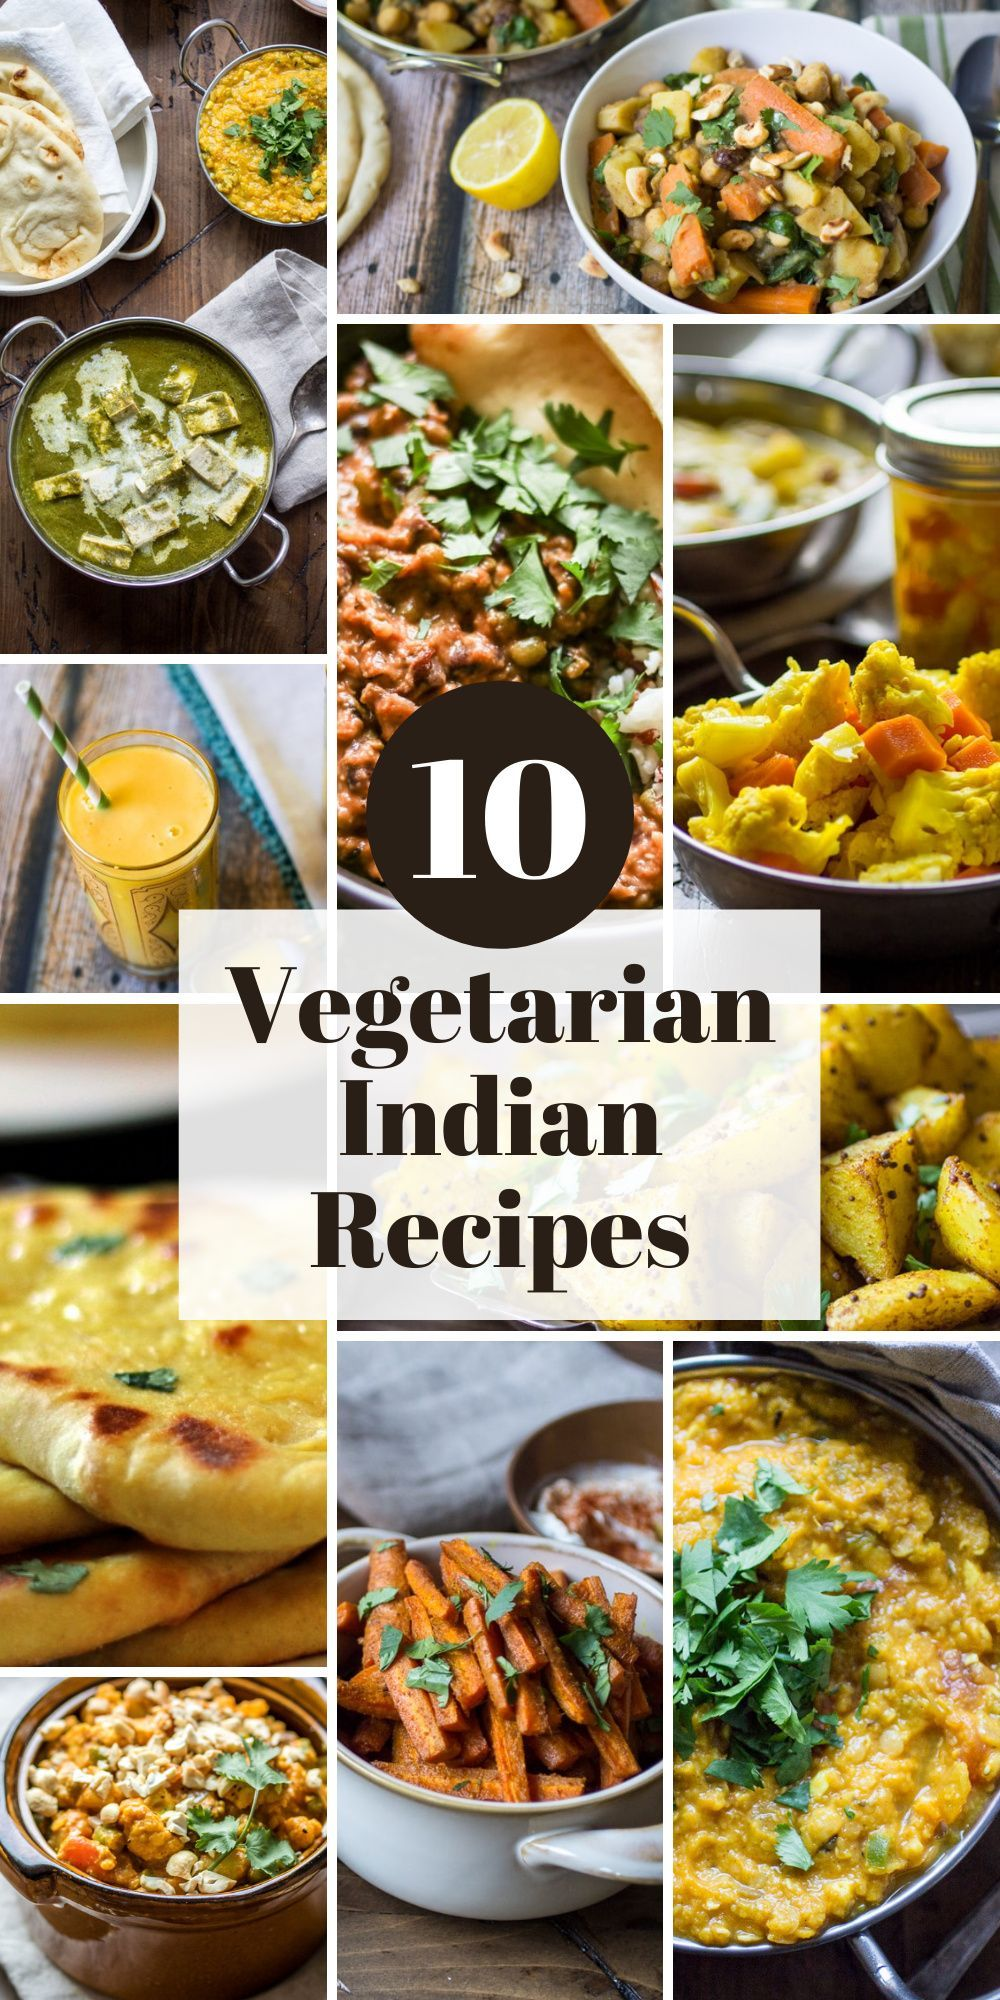 10 Vegetarian Indian Recipes To Make Again And Again The Wanderlust Kitchen Indian Food Recipes Vegetarian Indian Food Recipes Recipes